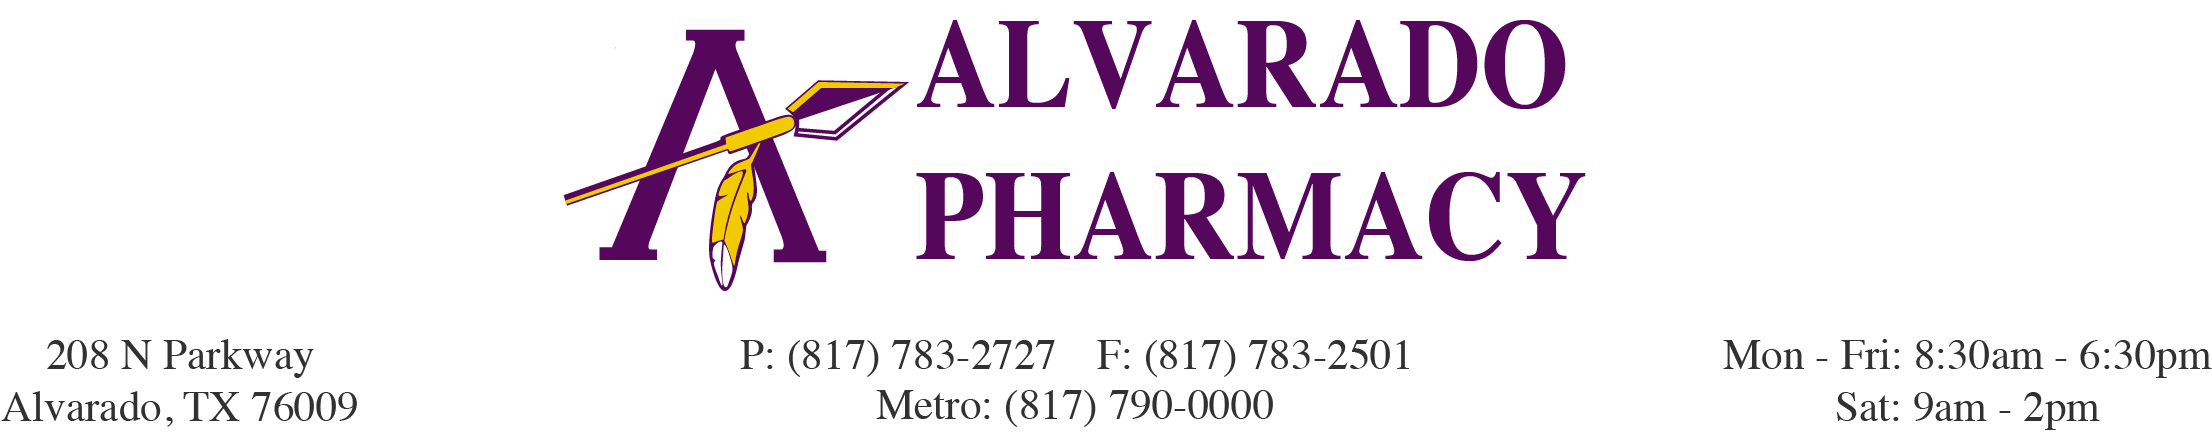 Alvarado Pharmacy